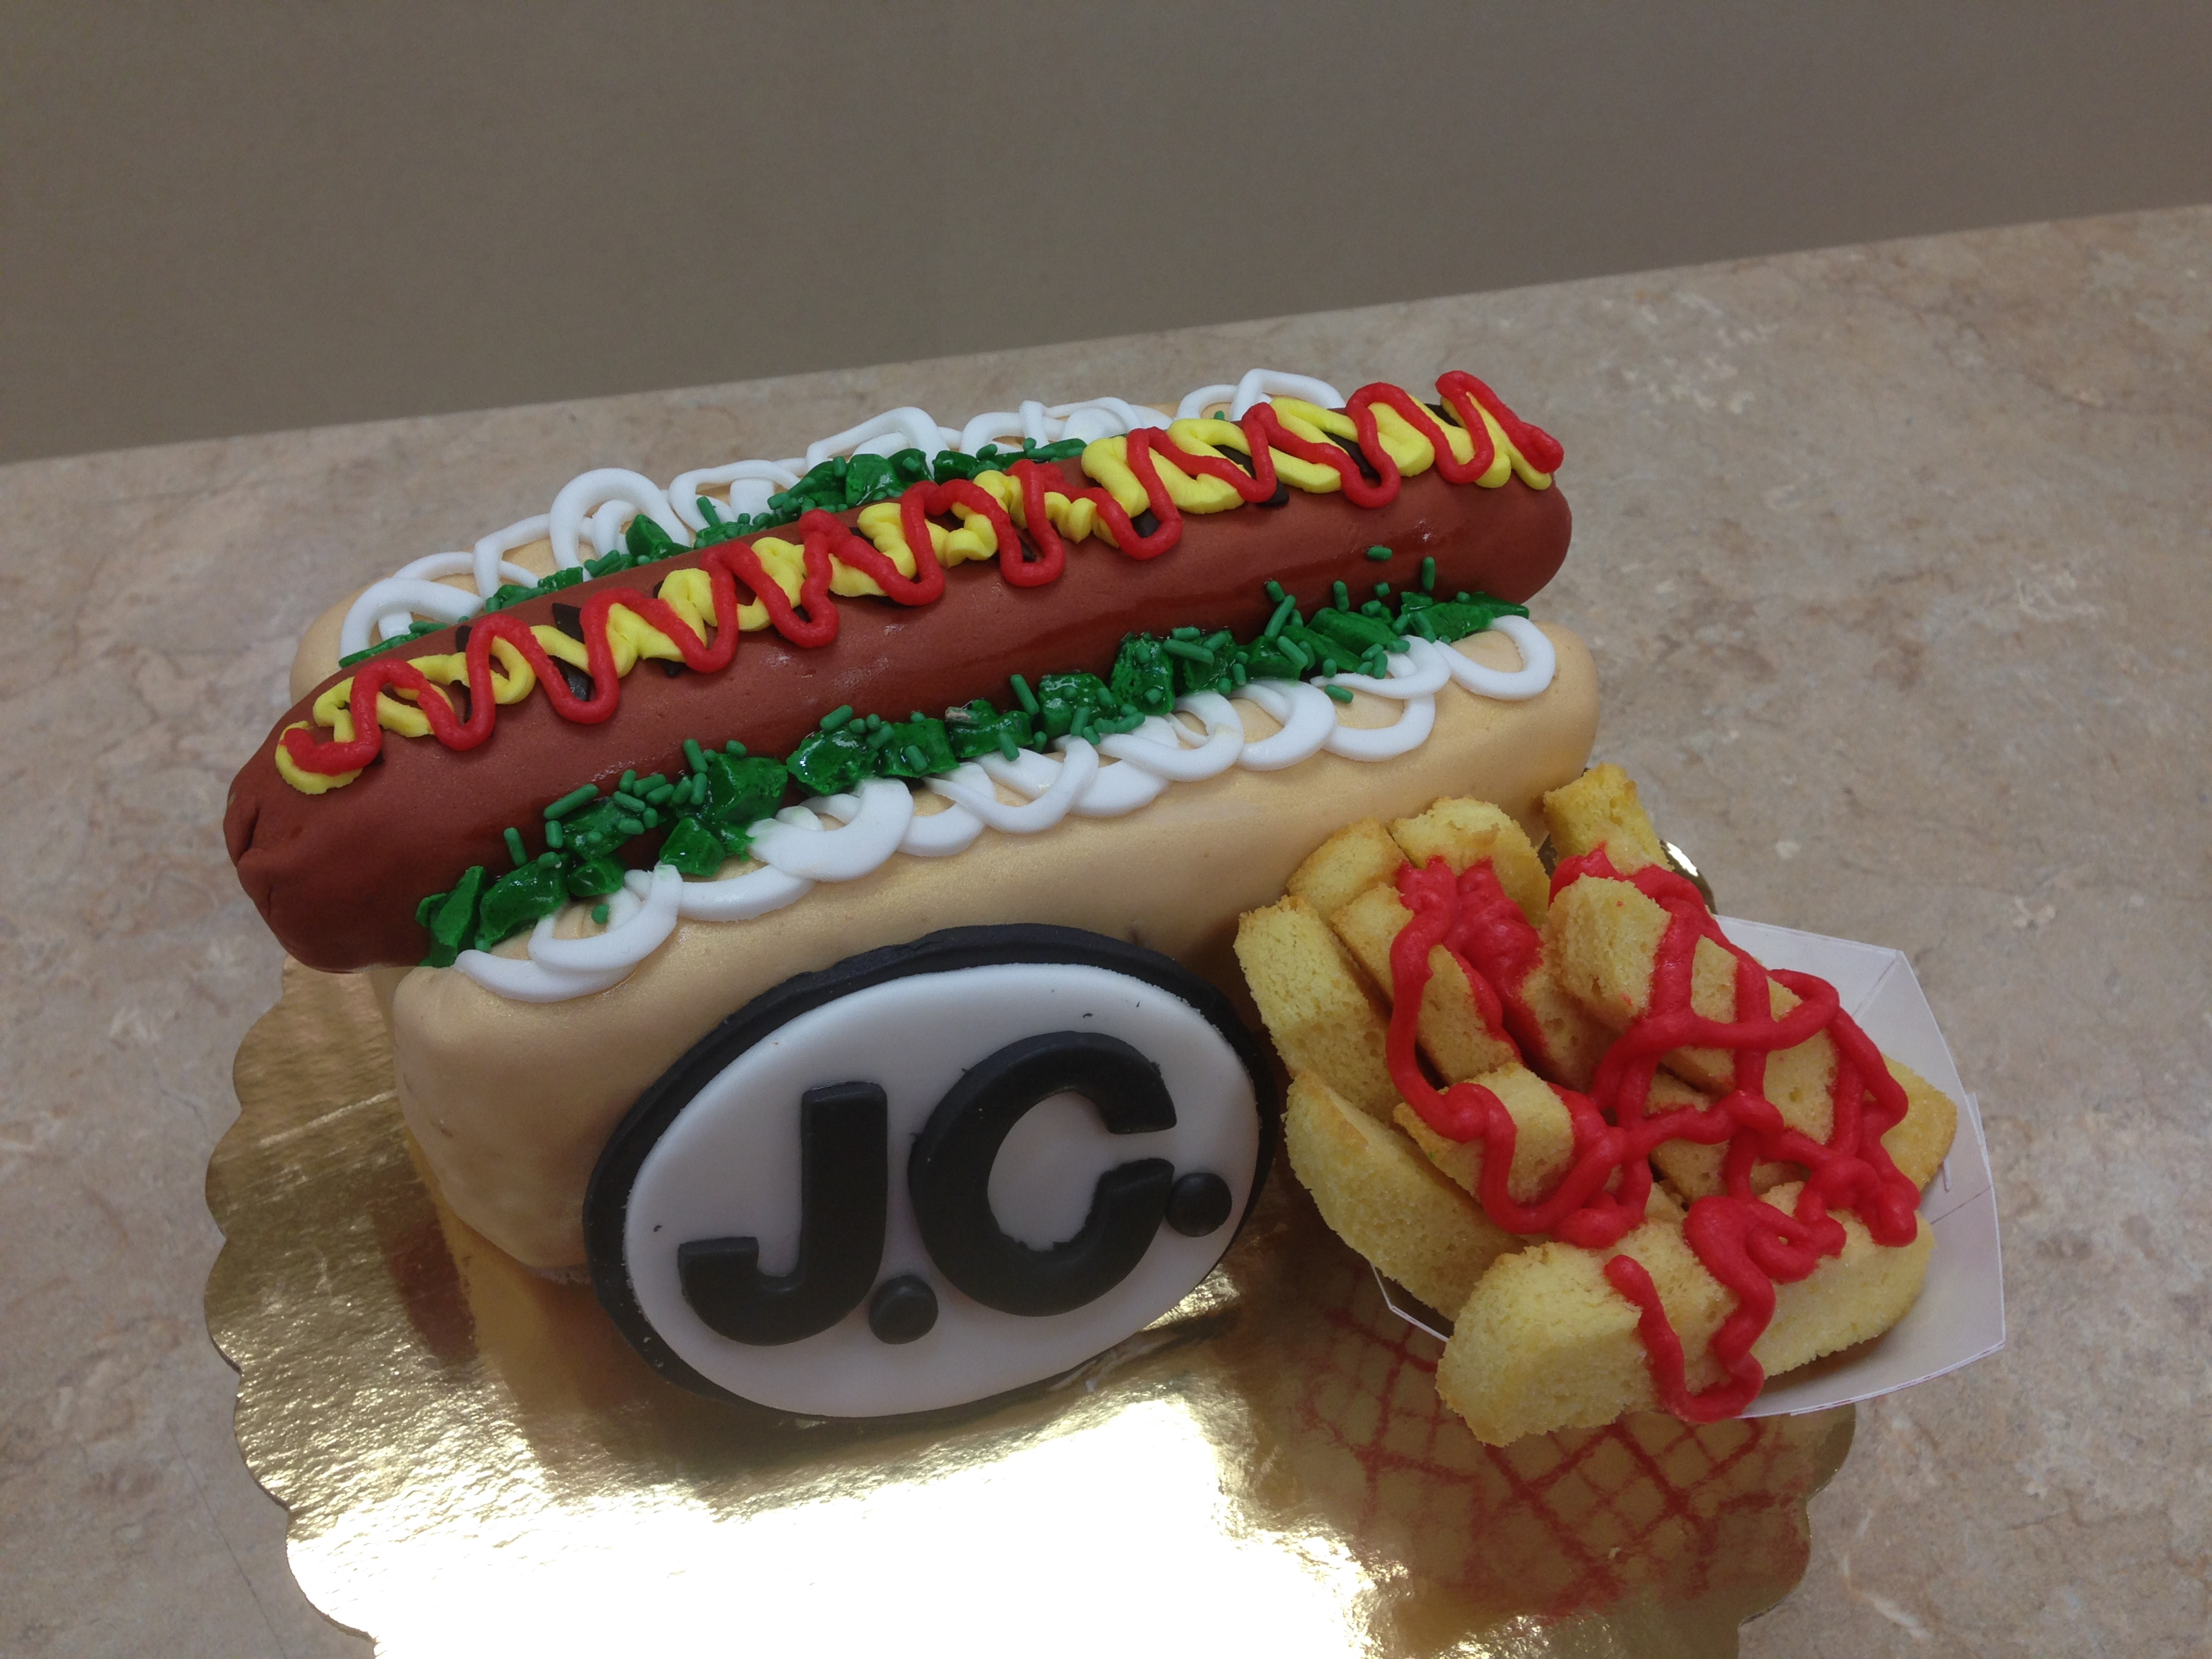 Hot Dog and Fries Cake